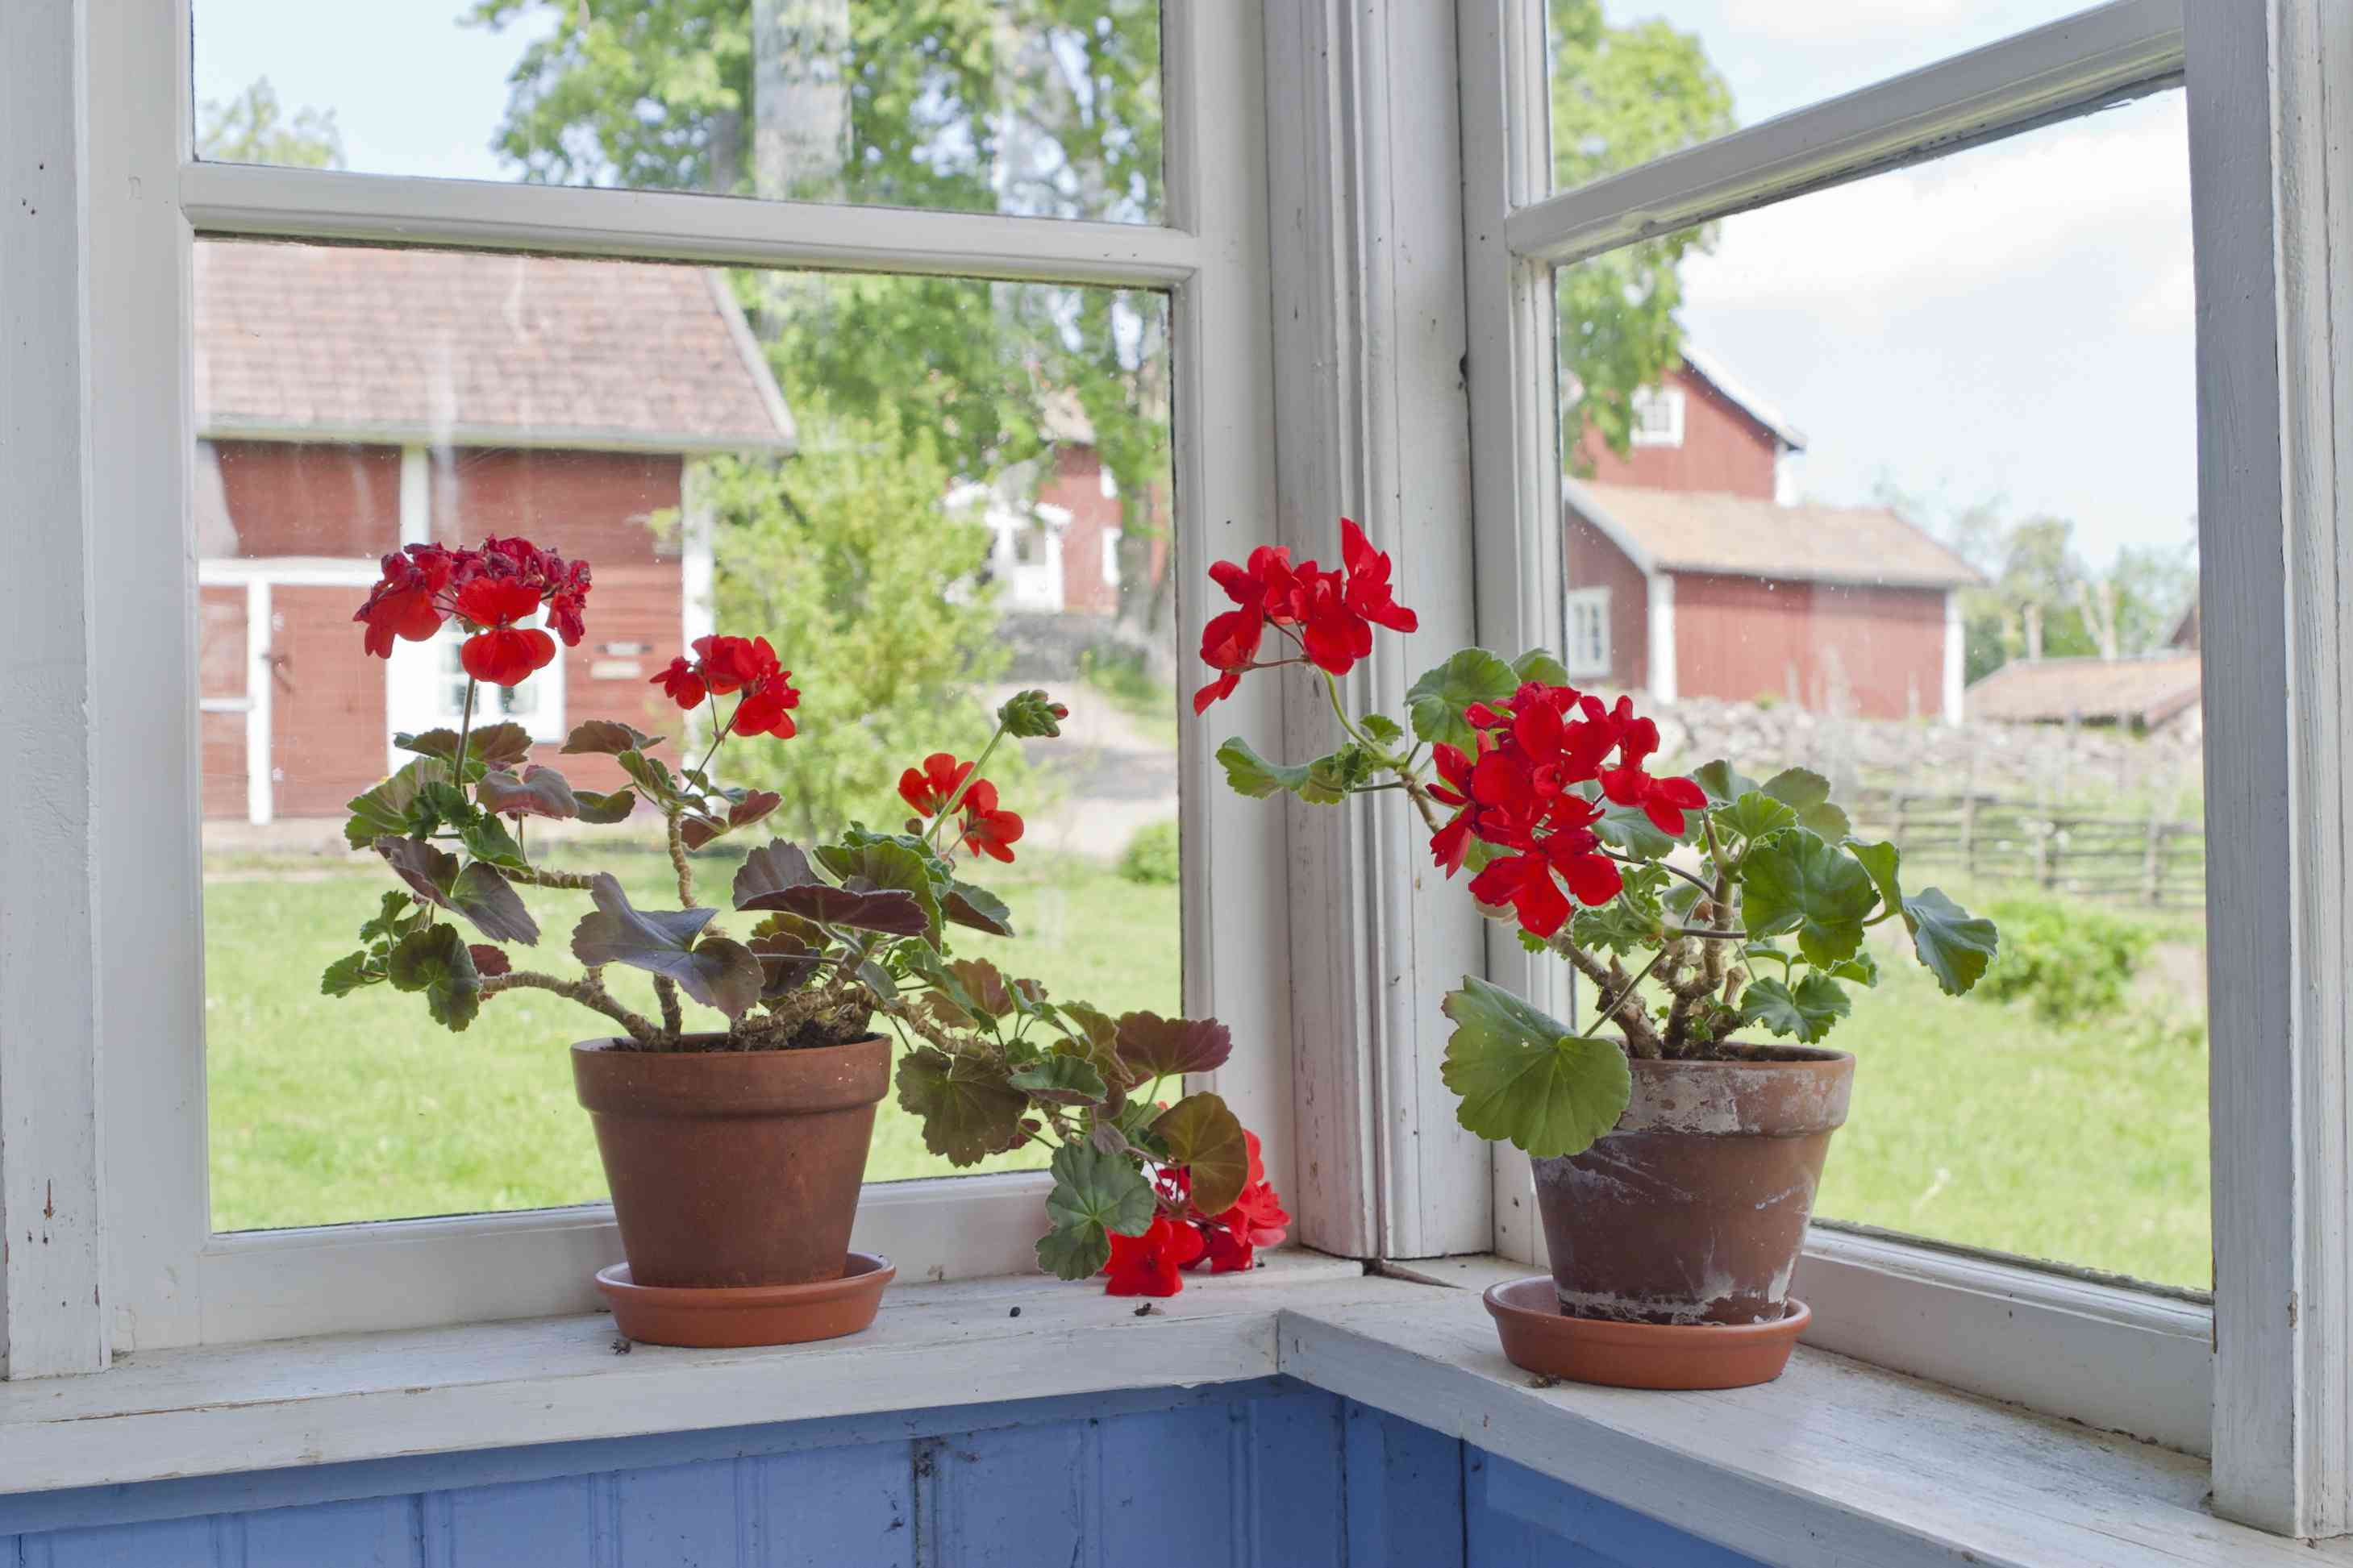 Potted red geraniums on windowsill